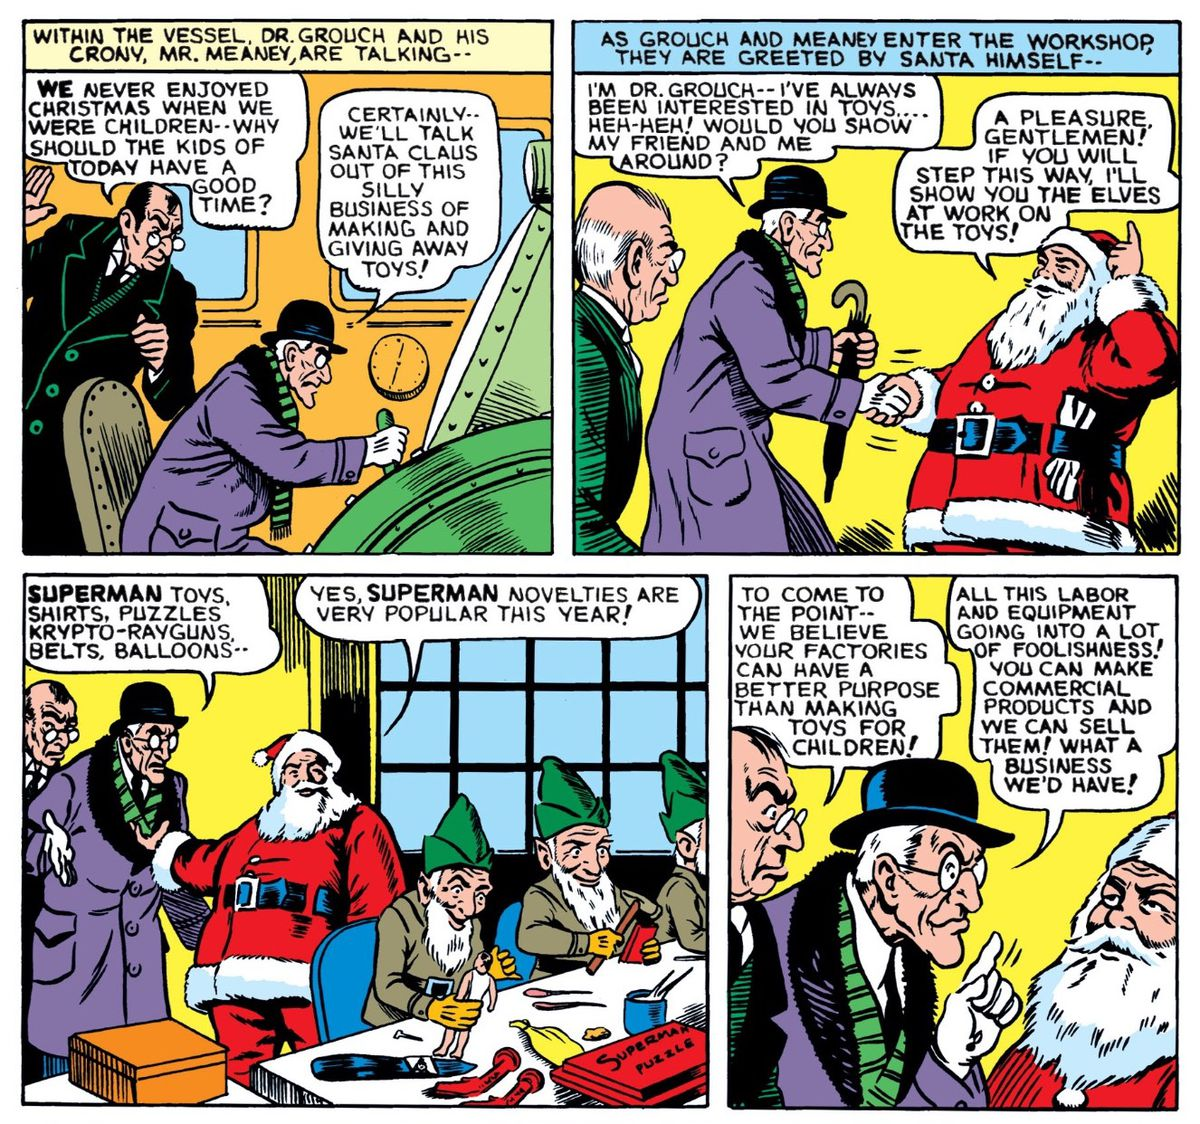 Dr. Grouch and Mr. Meaney try to talk Santa out of making toys in favor of more lucrative items, in Superman's Christmas Adventure, DC Comics (1940)